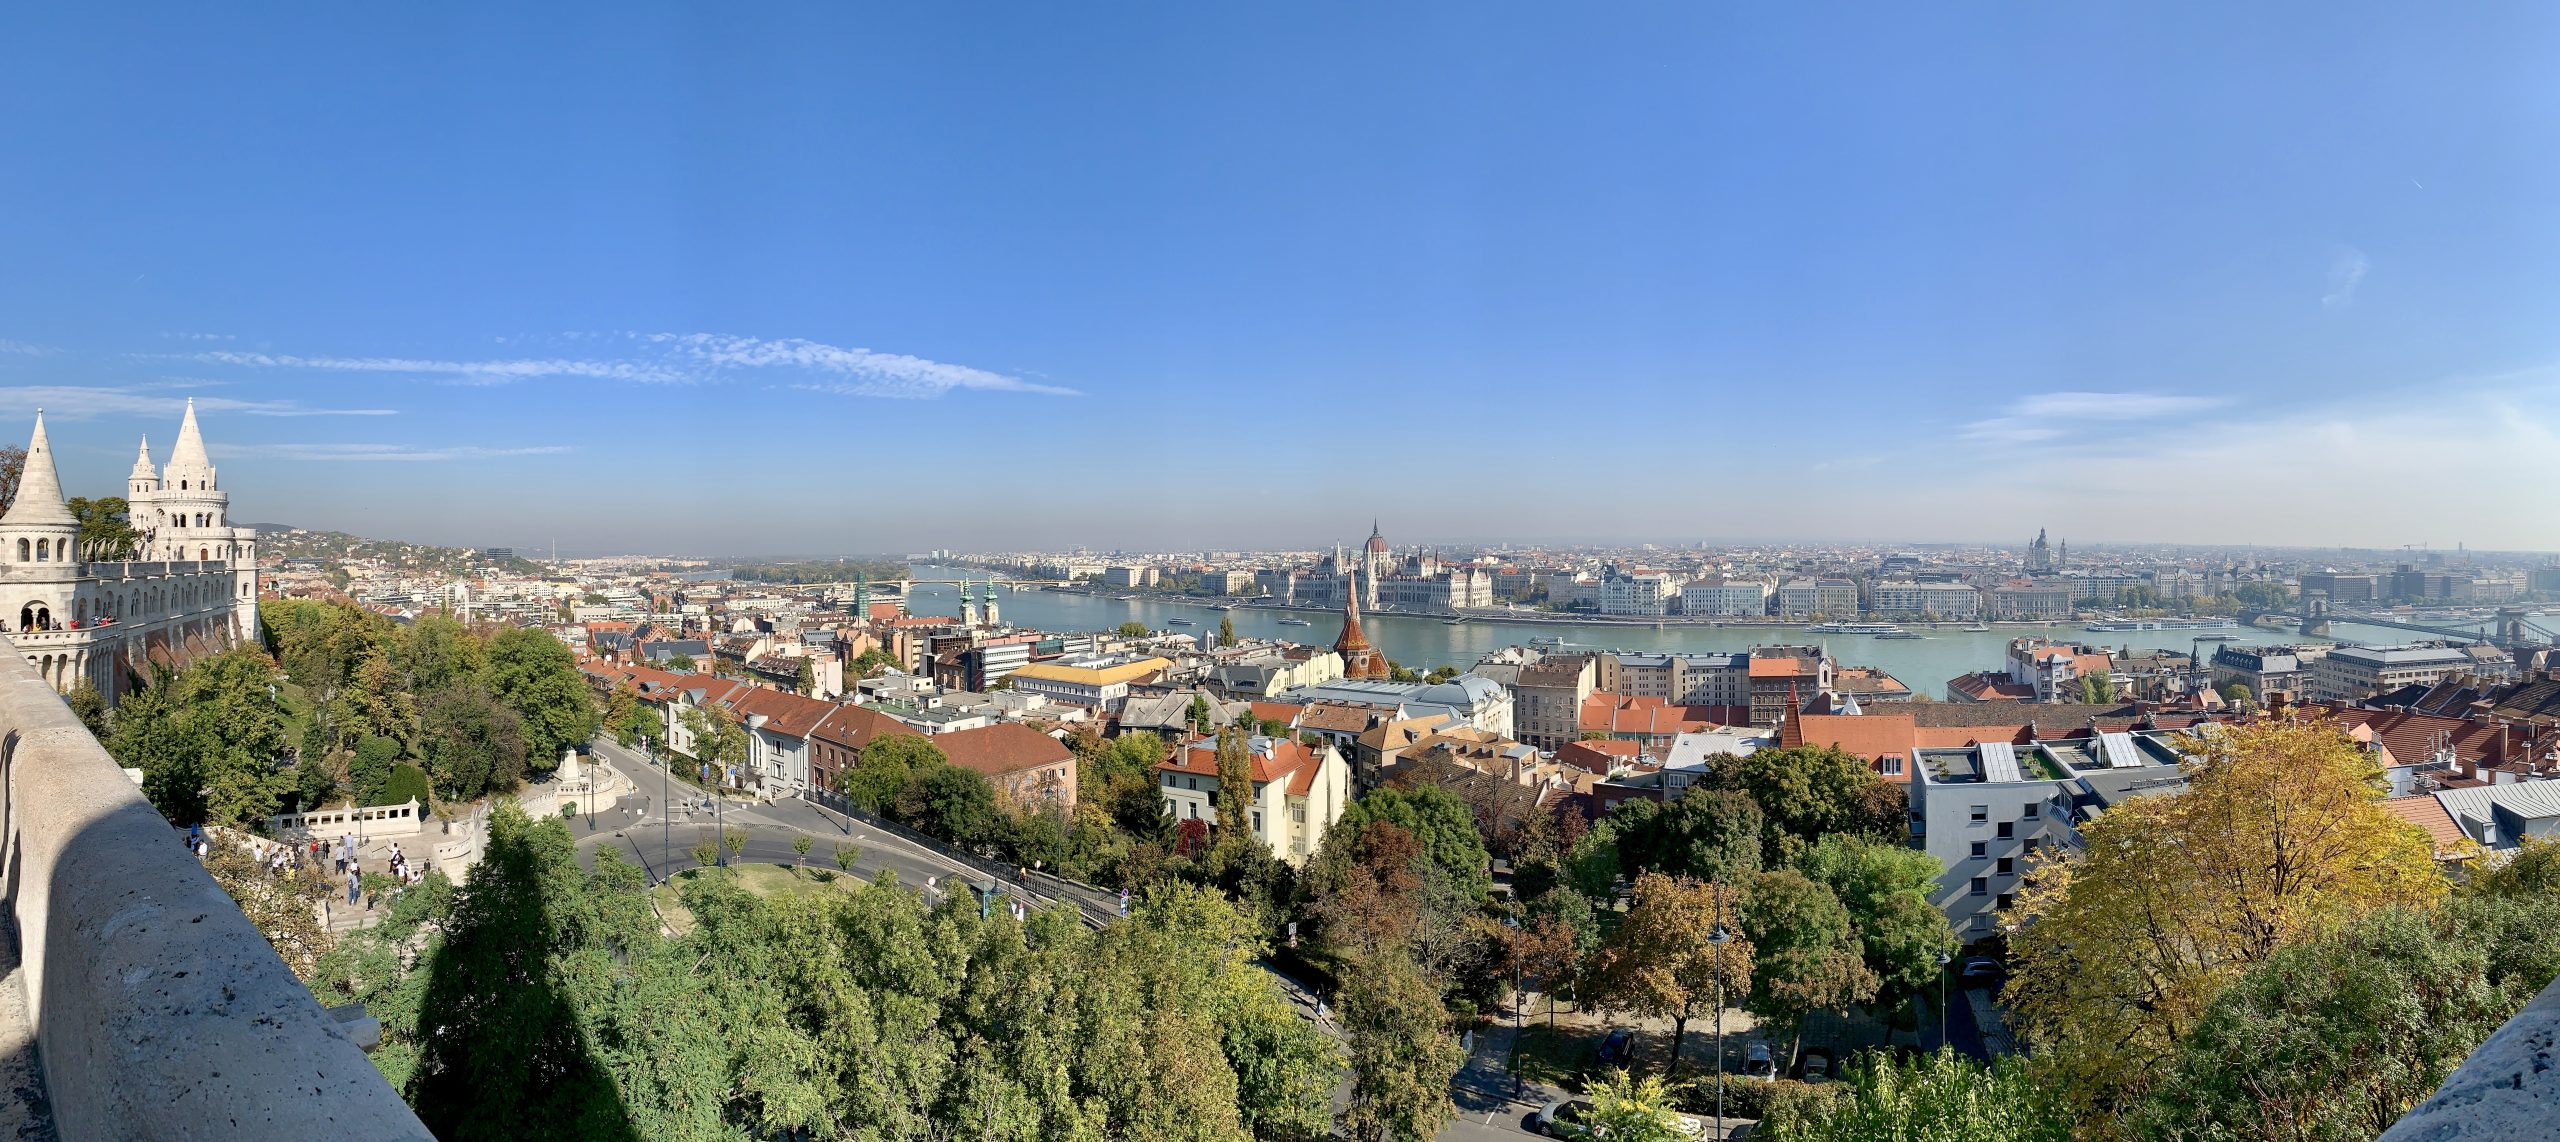 View of Danube and Pest before cruising the Danube River